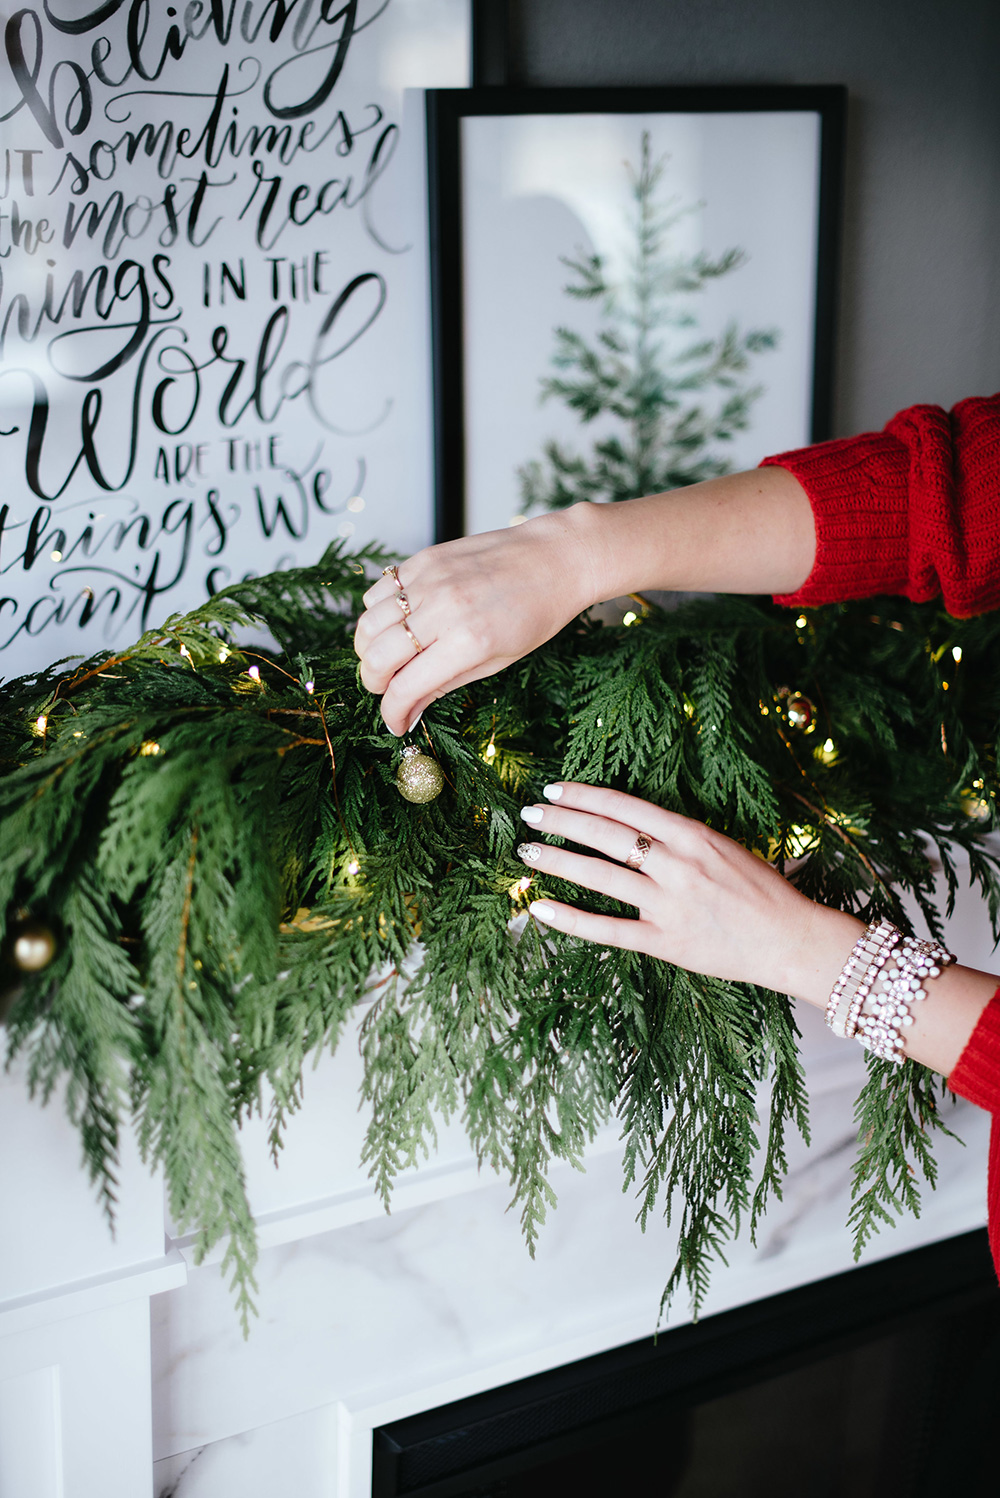 Beautiful Holiday Fireplace Styling By Krista Fredricks of Pike Petals using Lily & Val hand lettered prints